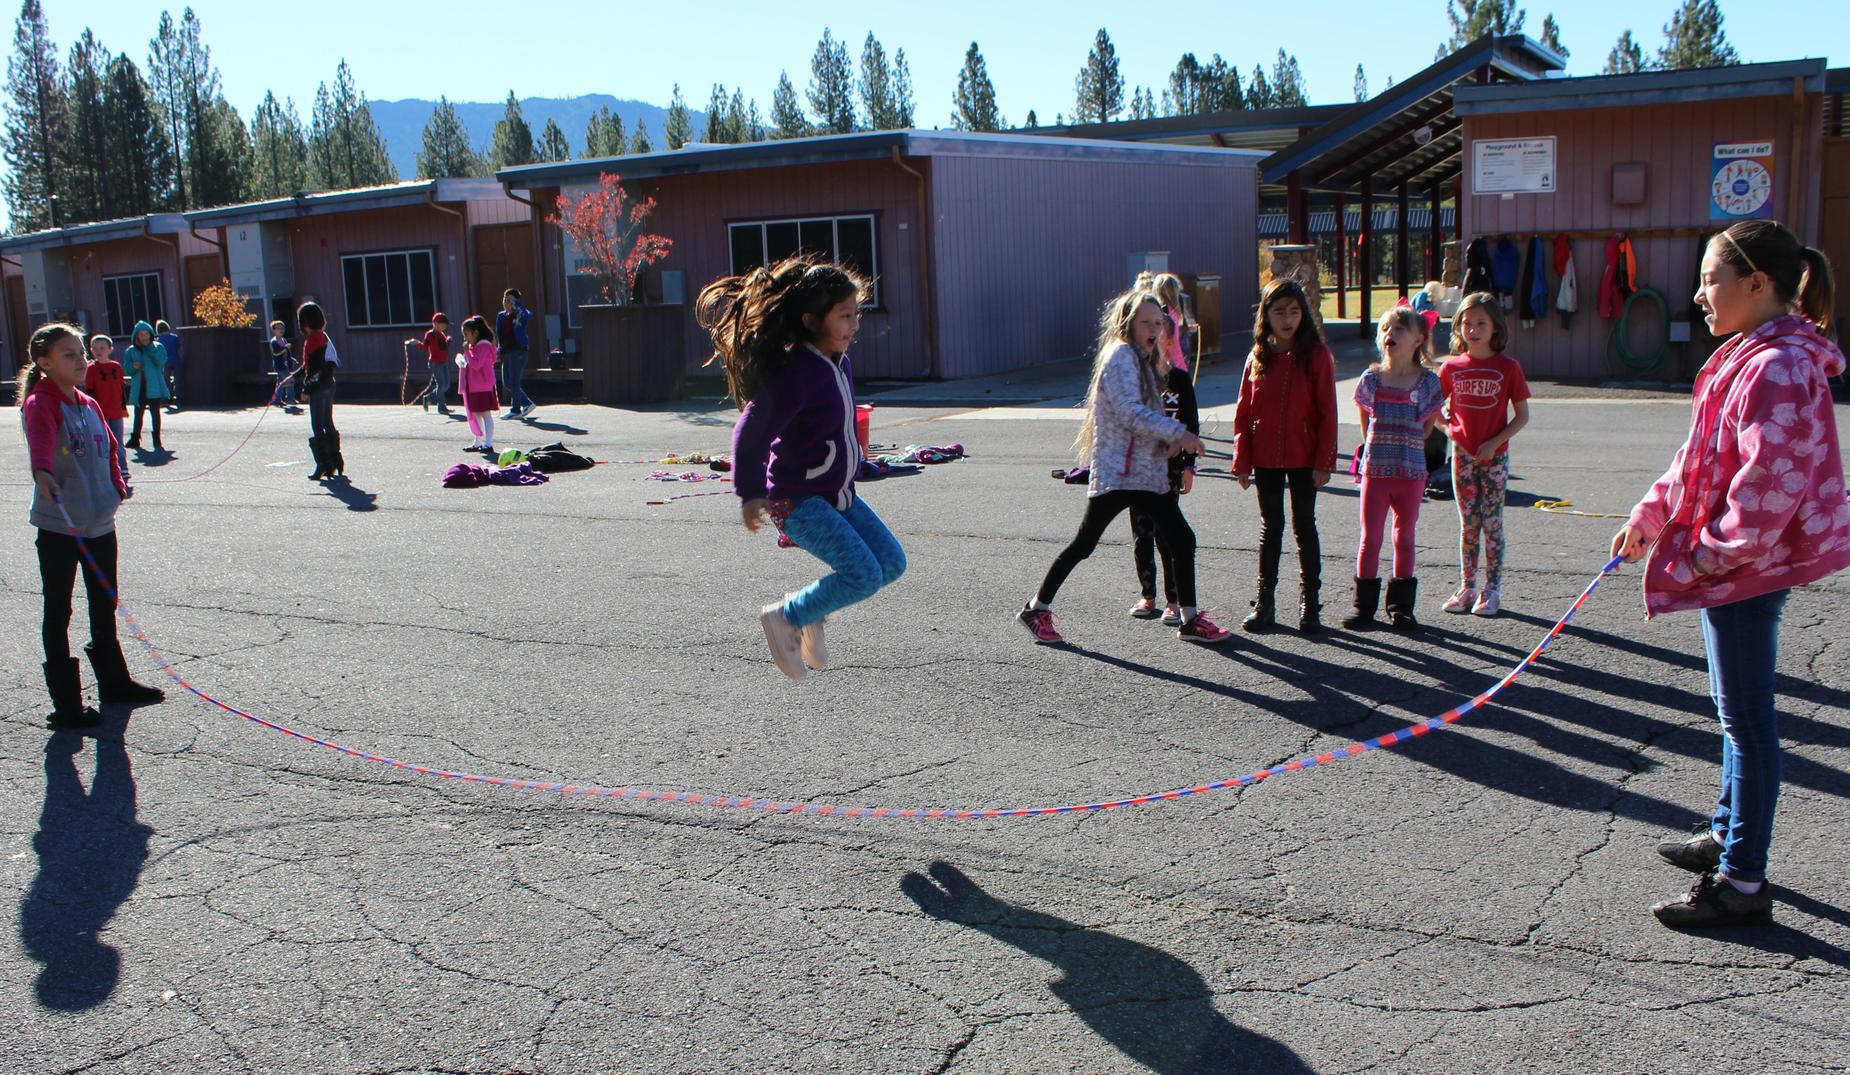 Jumping rope on the playground